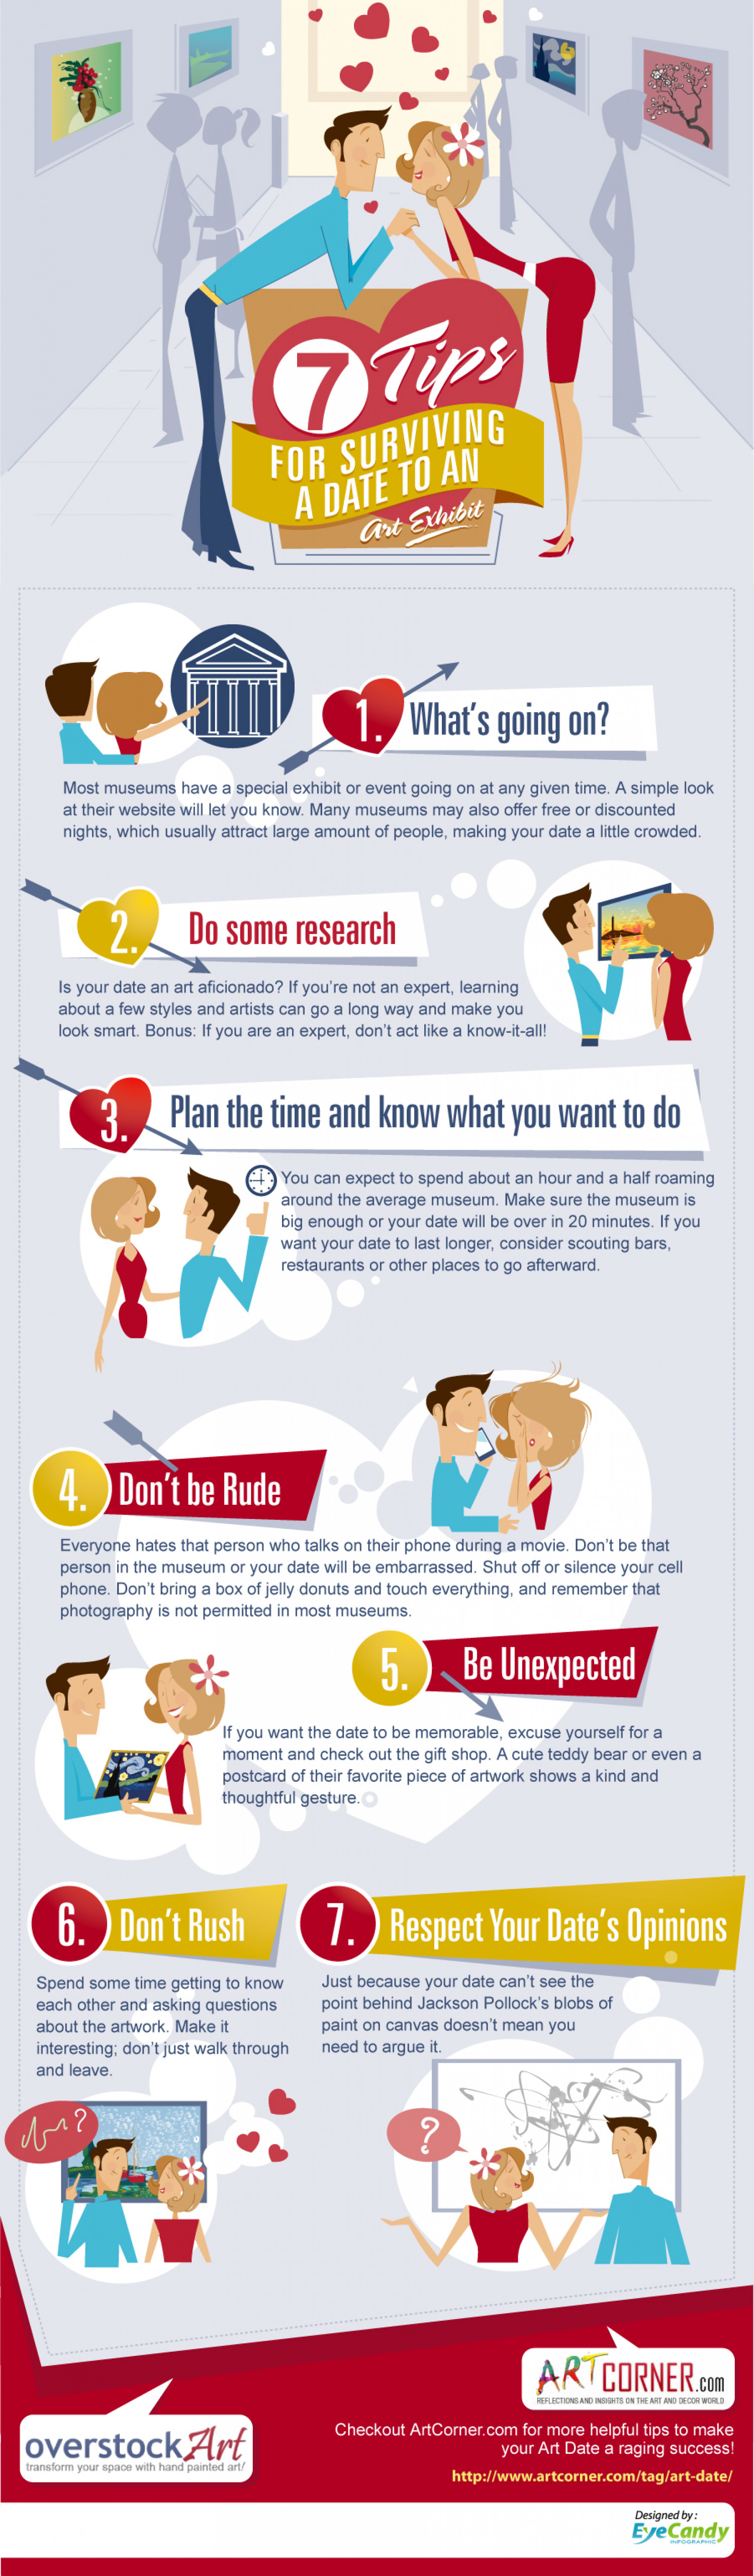 7 Tips Surviving a Date to the Art Museum  Infographic